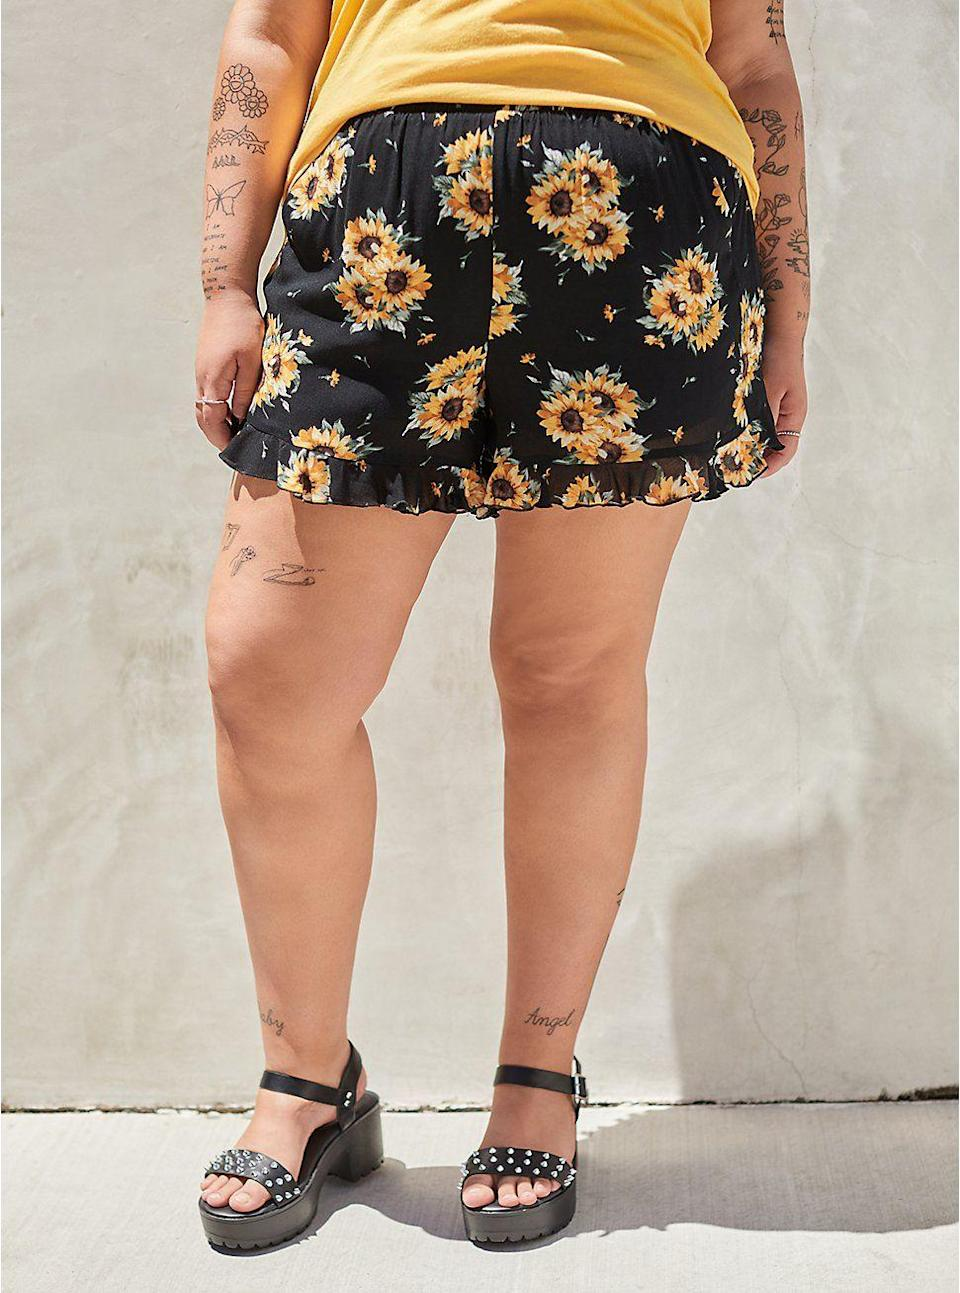 """<p>torrid.com</p><p><strong>$34.12</strong></p><p><a href=""""https://go.redirectingat.com?id=74968X1596630&url=https%3A%2F%2Fwww.torrid.com%2Fproduct%2Fruffle-hem-mid-short---gauze-sunflower-black-%2F13166414.html&sref=https%3A%2F%2Fwww.thepioneerwoman.com%2Ffashion-style%2Fg37083925%2Fbest-plus-size-shorts%2F"""" rel=""""nofollow noopener"""" target=""""_blank"""" data-ylk=""""slk:Shop Now"""" class=""""link rapid-noclick-resp"""">Shop Now</a></p><p>You can never have too many florals! Pair these cute sunflower-printed shorts with a bright yellow top for a look that is sure to get you smiling. </p>"""